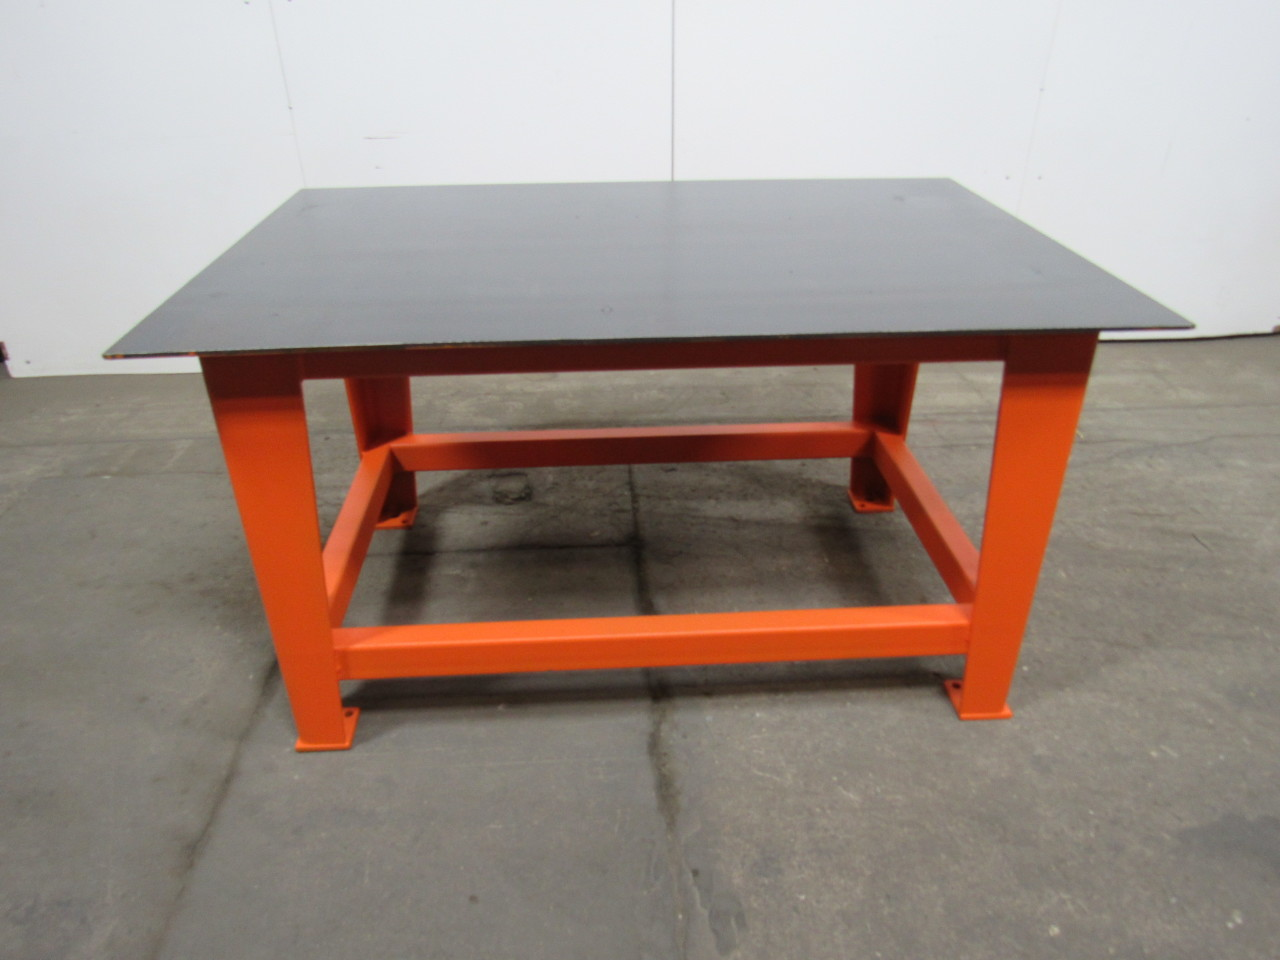 Steel Welding Work Bench Assembly Layout Table 60 X40 3 8 Thick Top Ebay